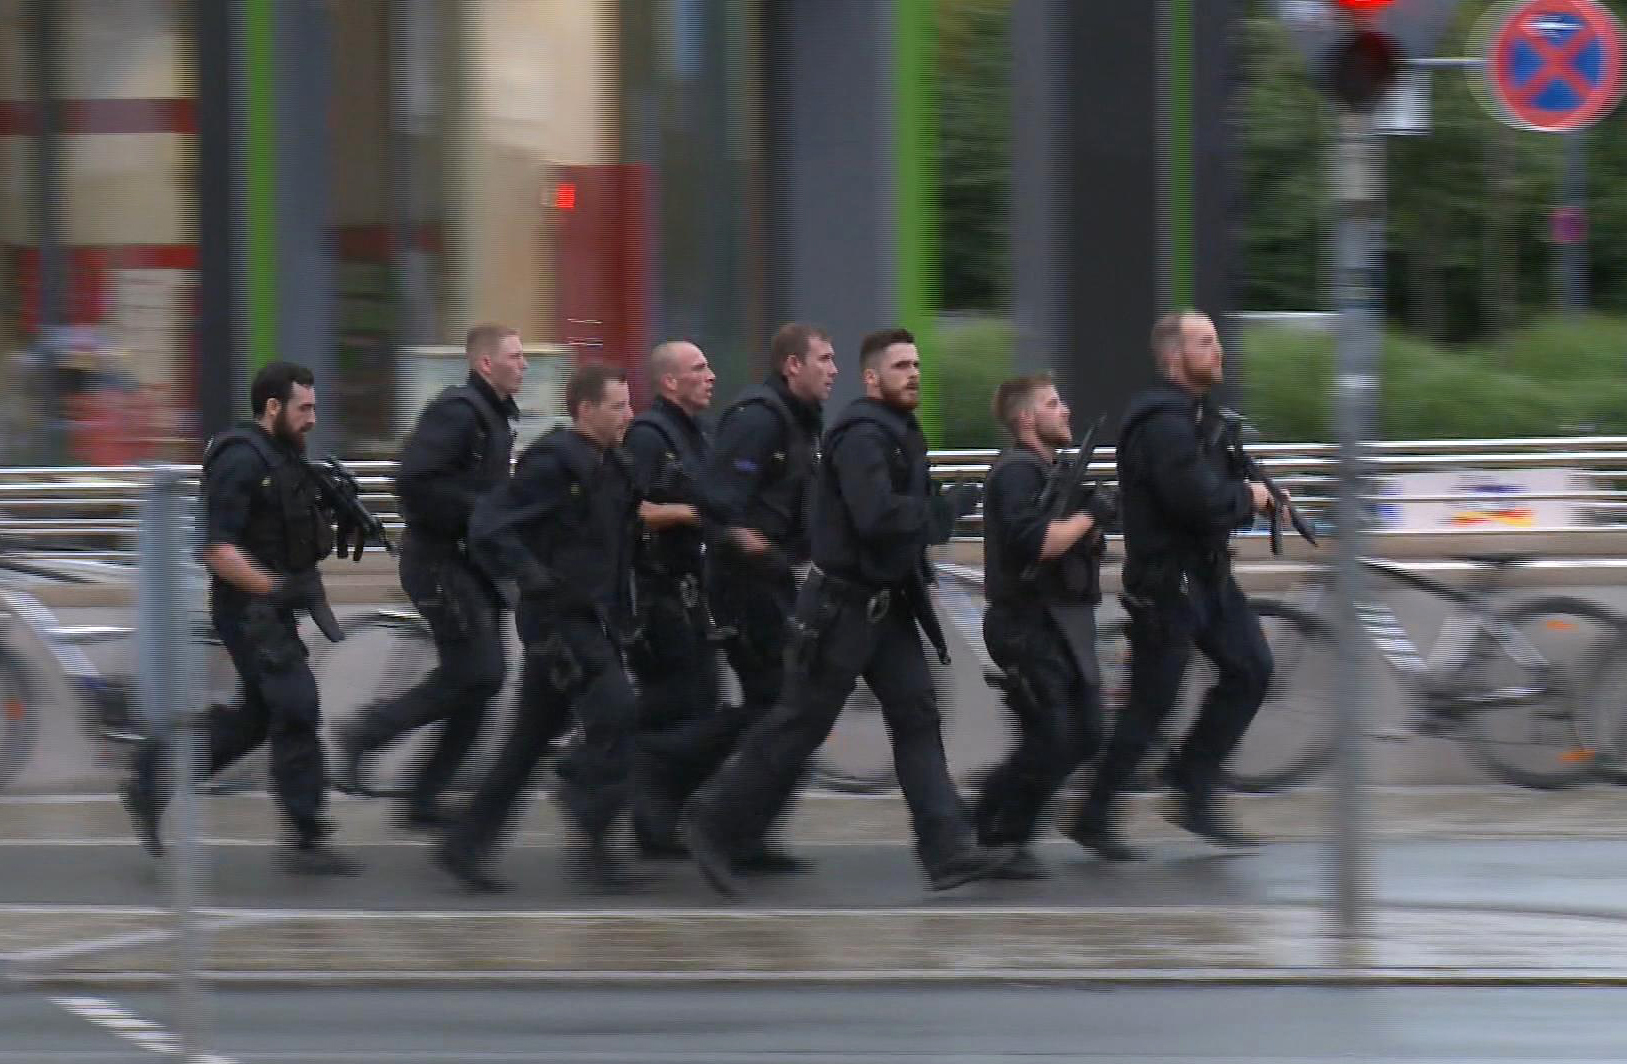 This is how the attack in Munich unfolded